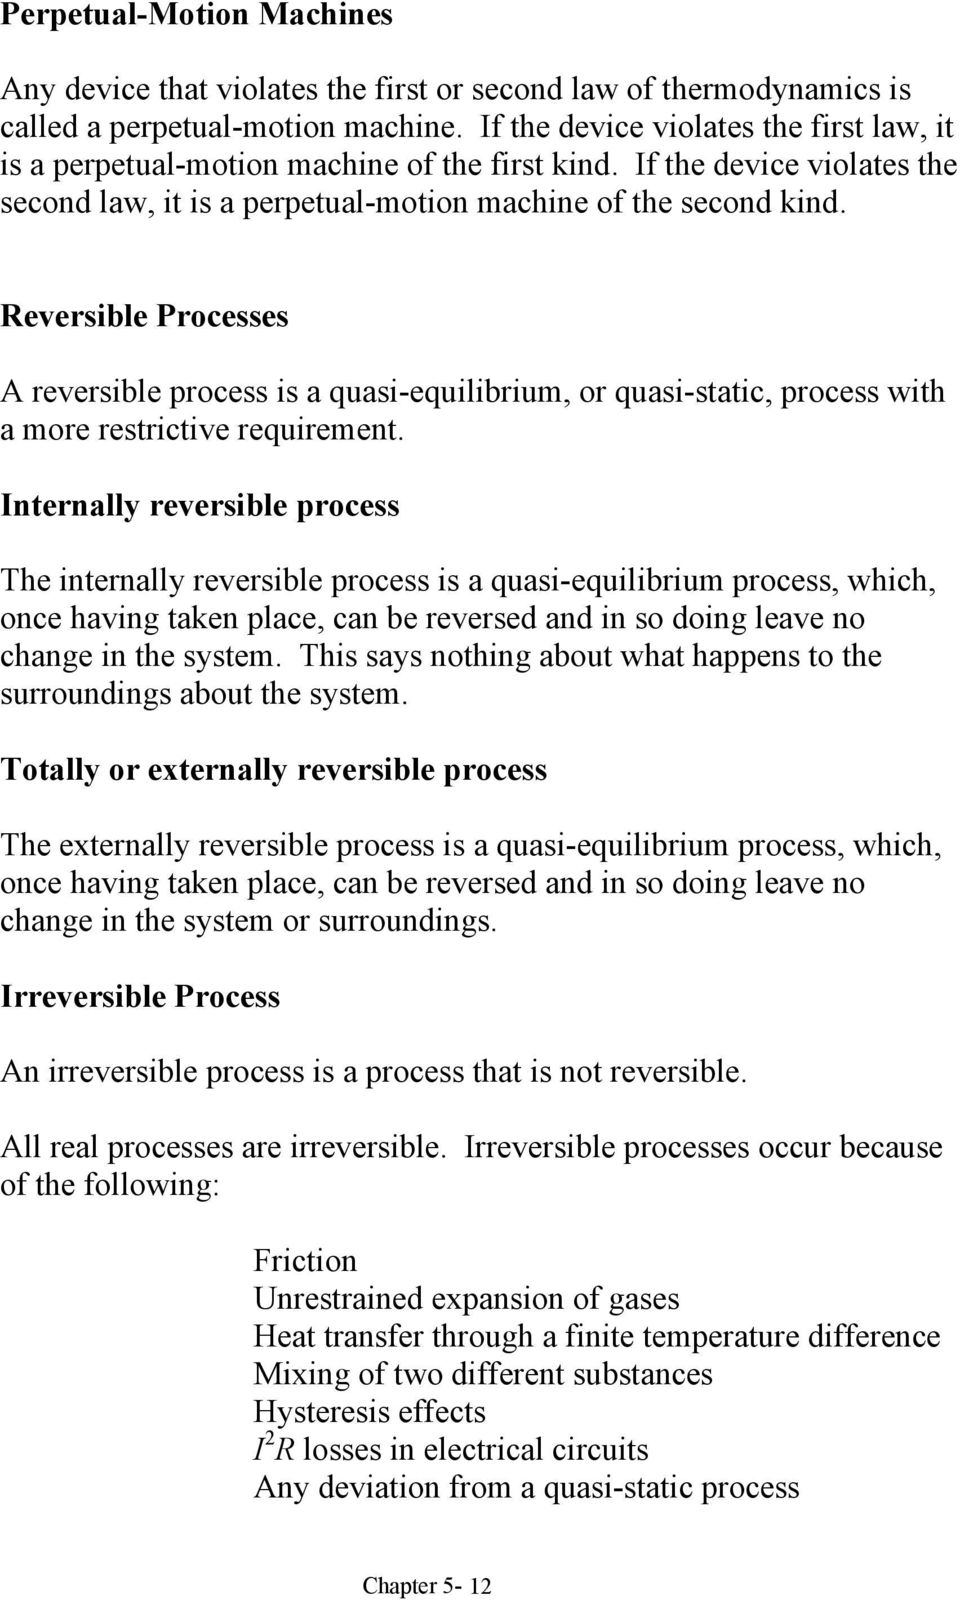 Reversible Processes A reversible process is a quasi-equilibrium, or quasi-static, process with a more restrictive requirement.